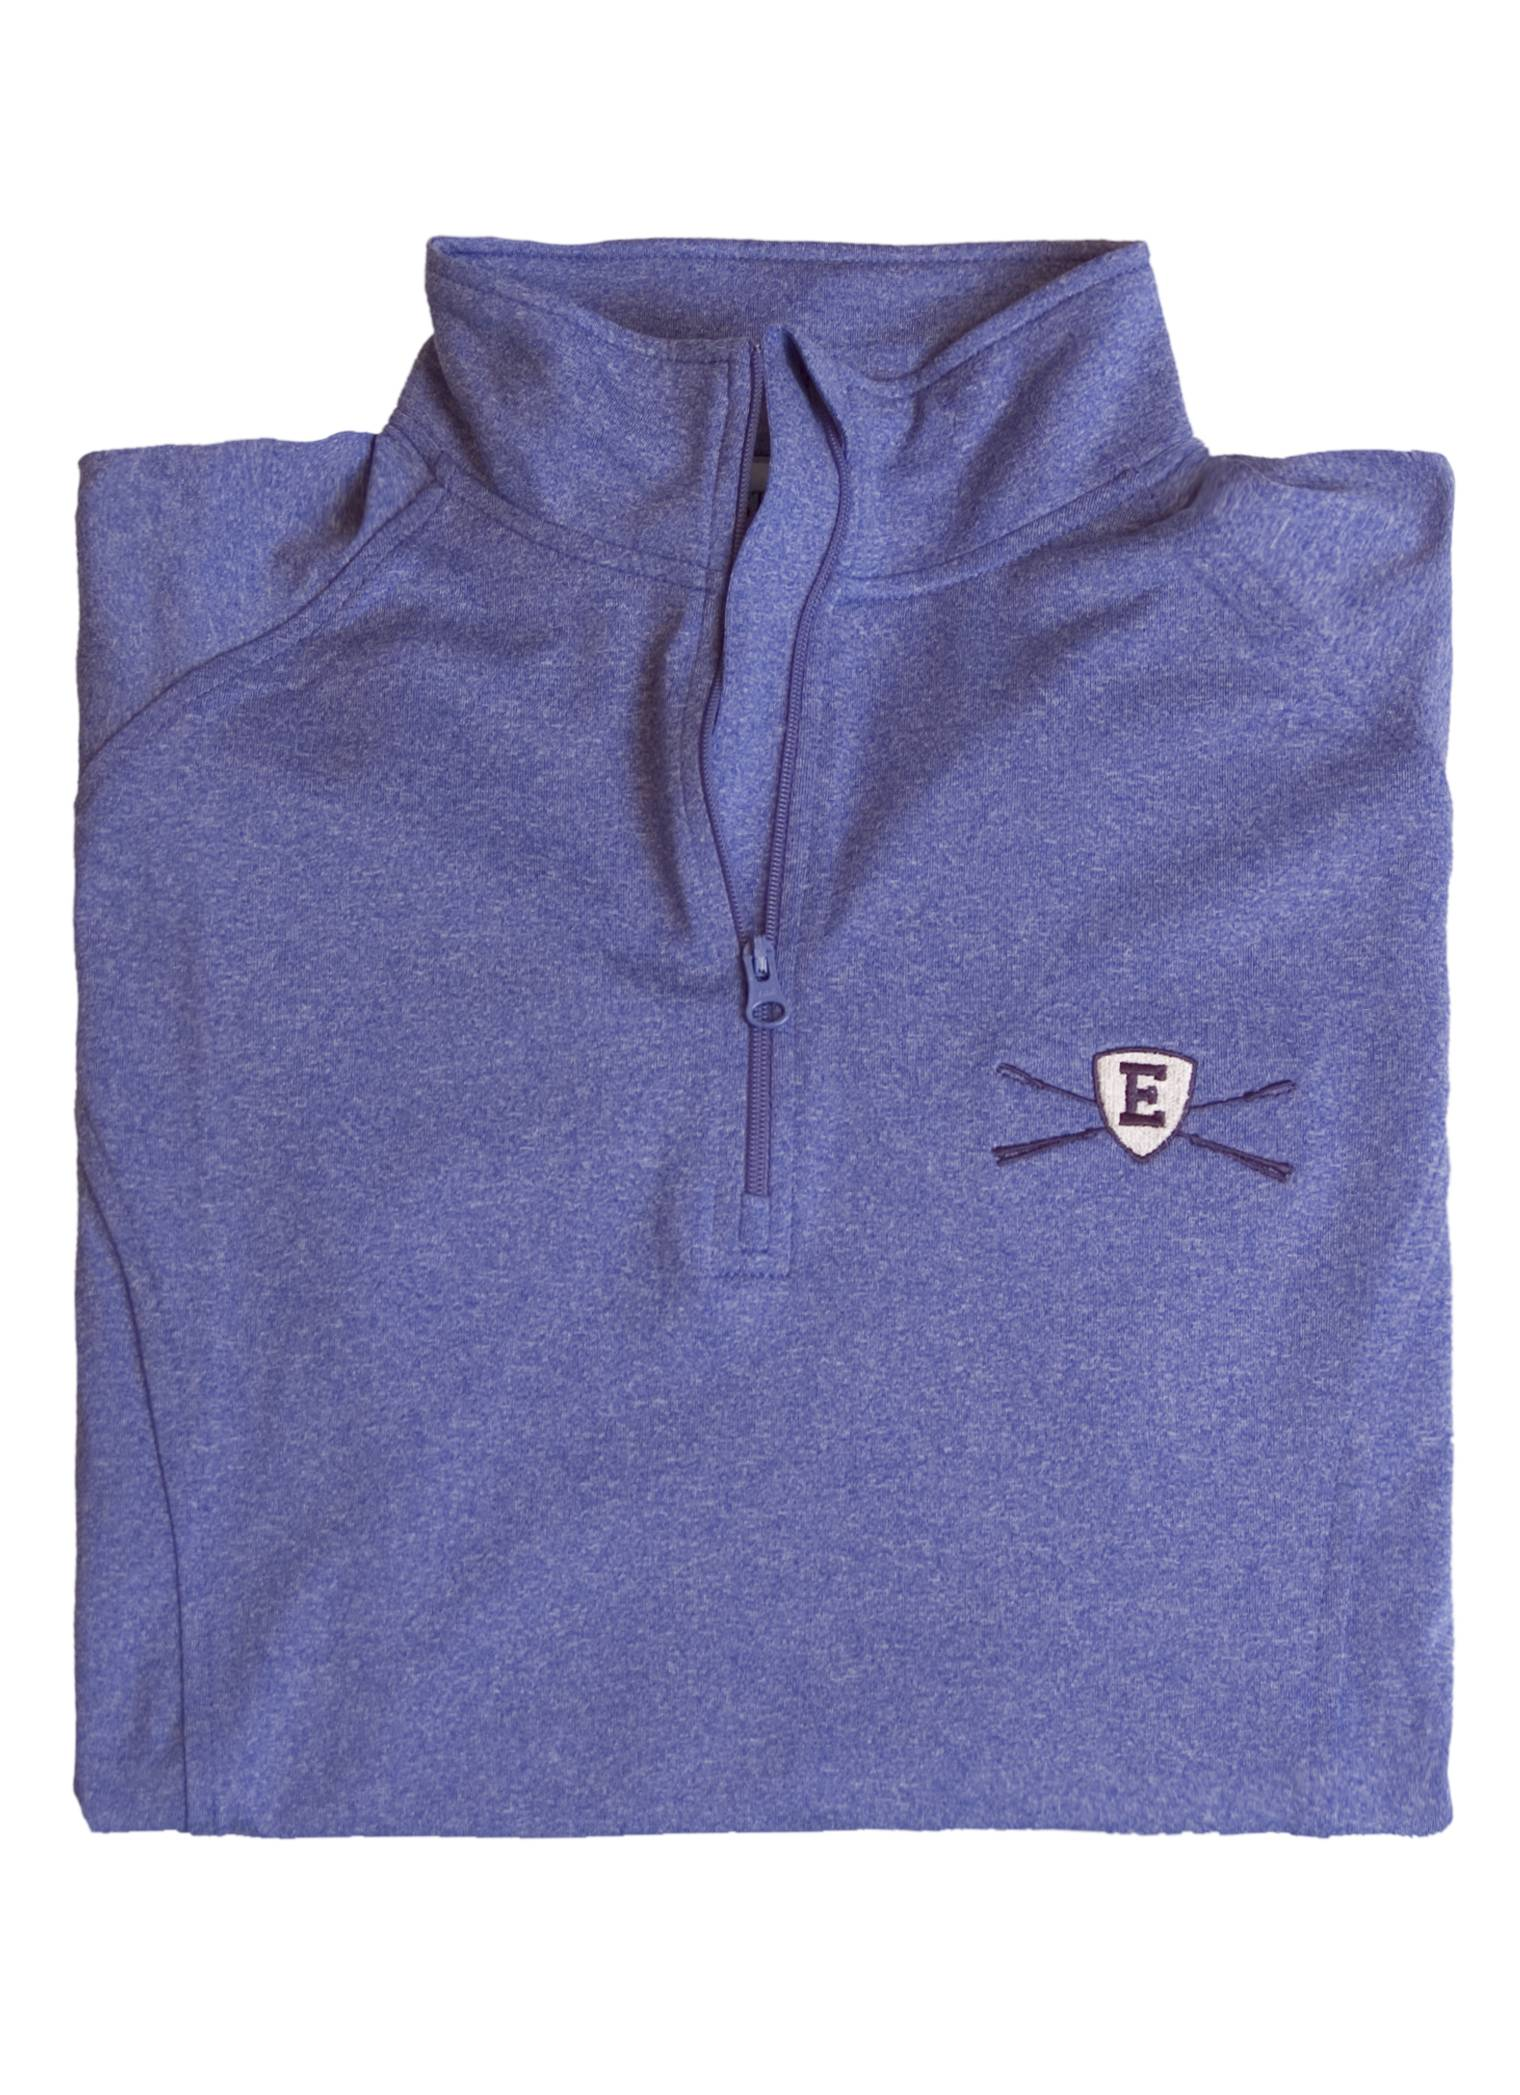 Stirrups Ladies 1/4 Zip Eventing With Whip Embroidered Stretch Pullover